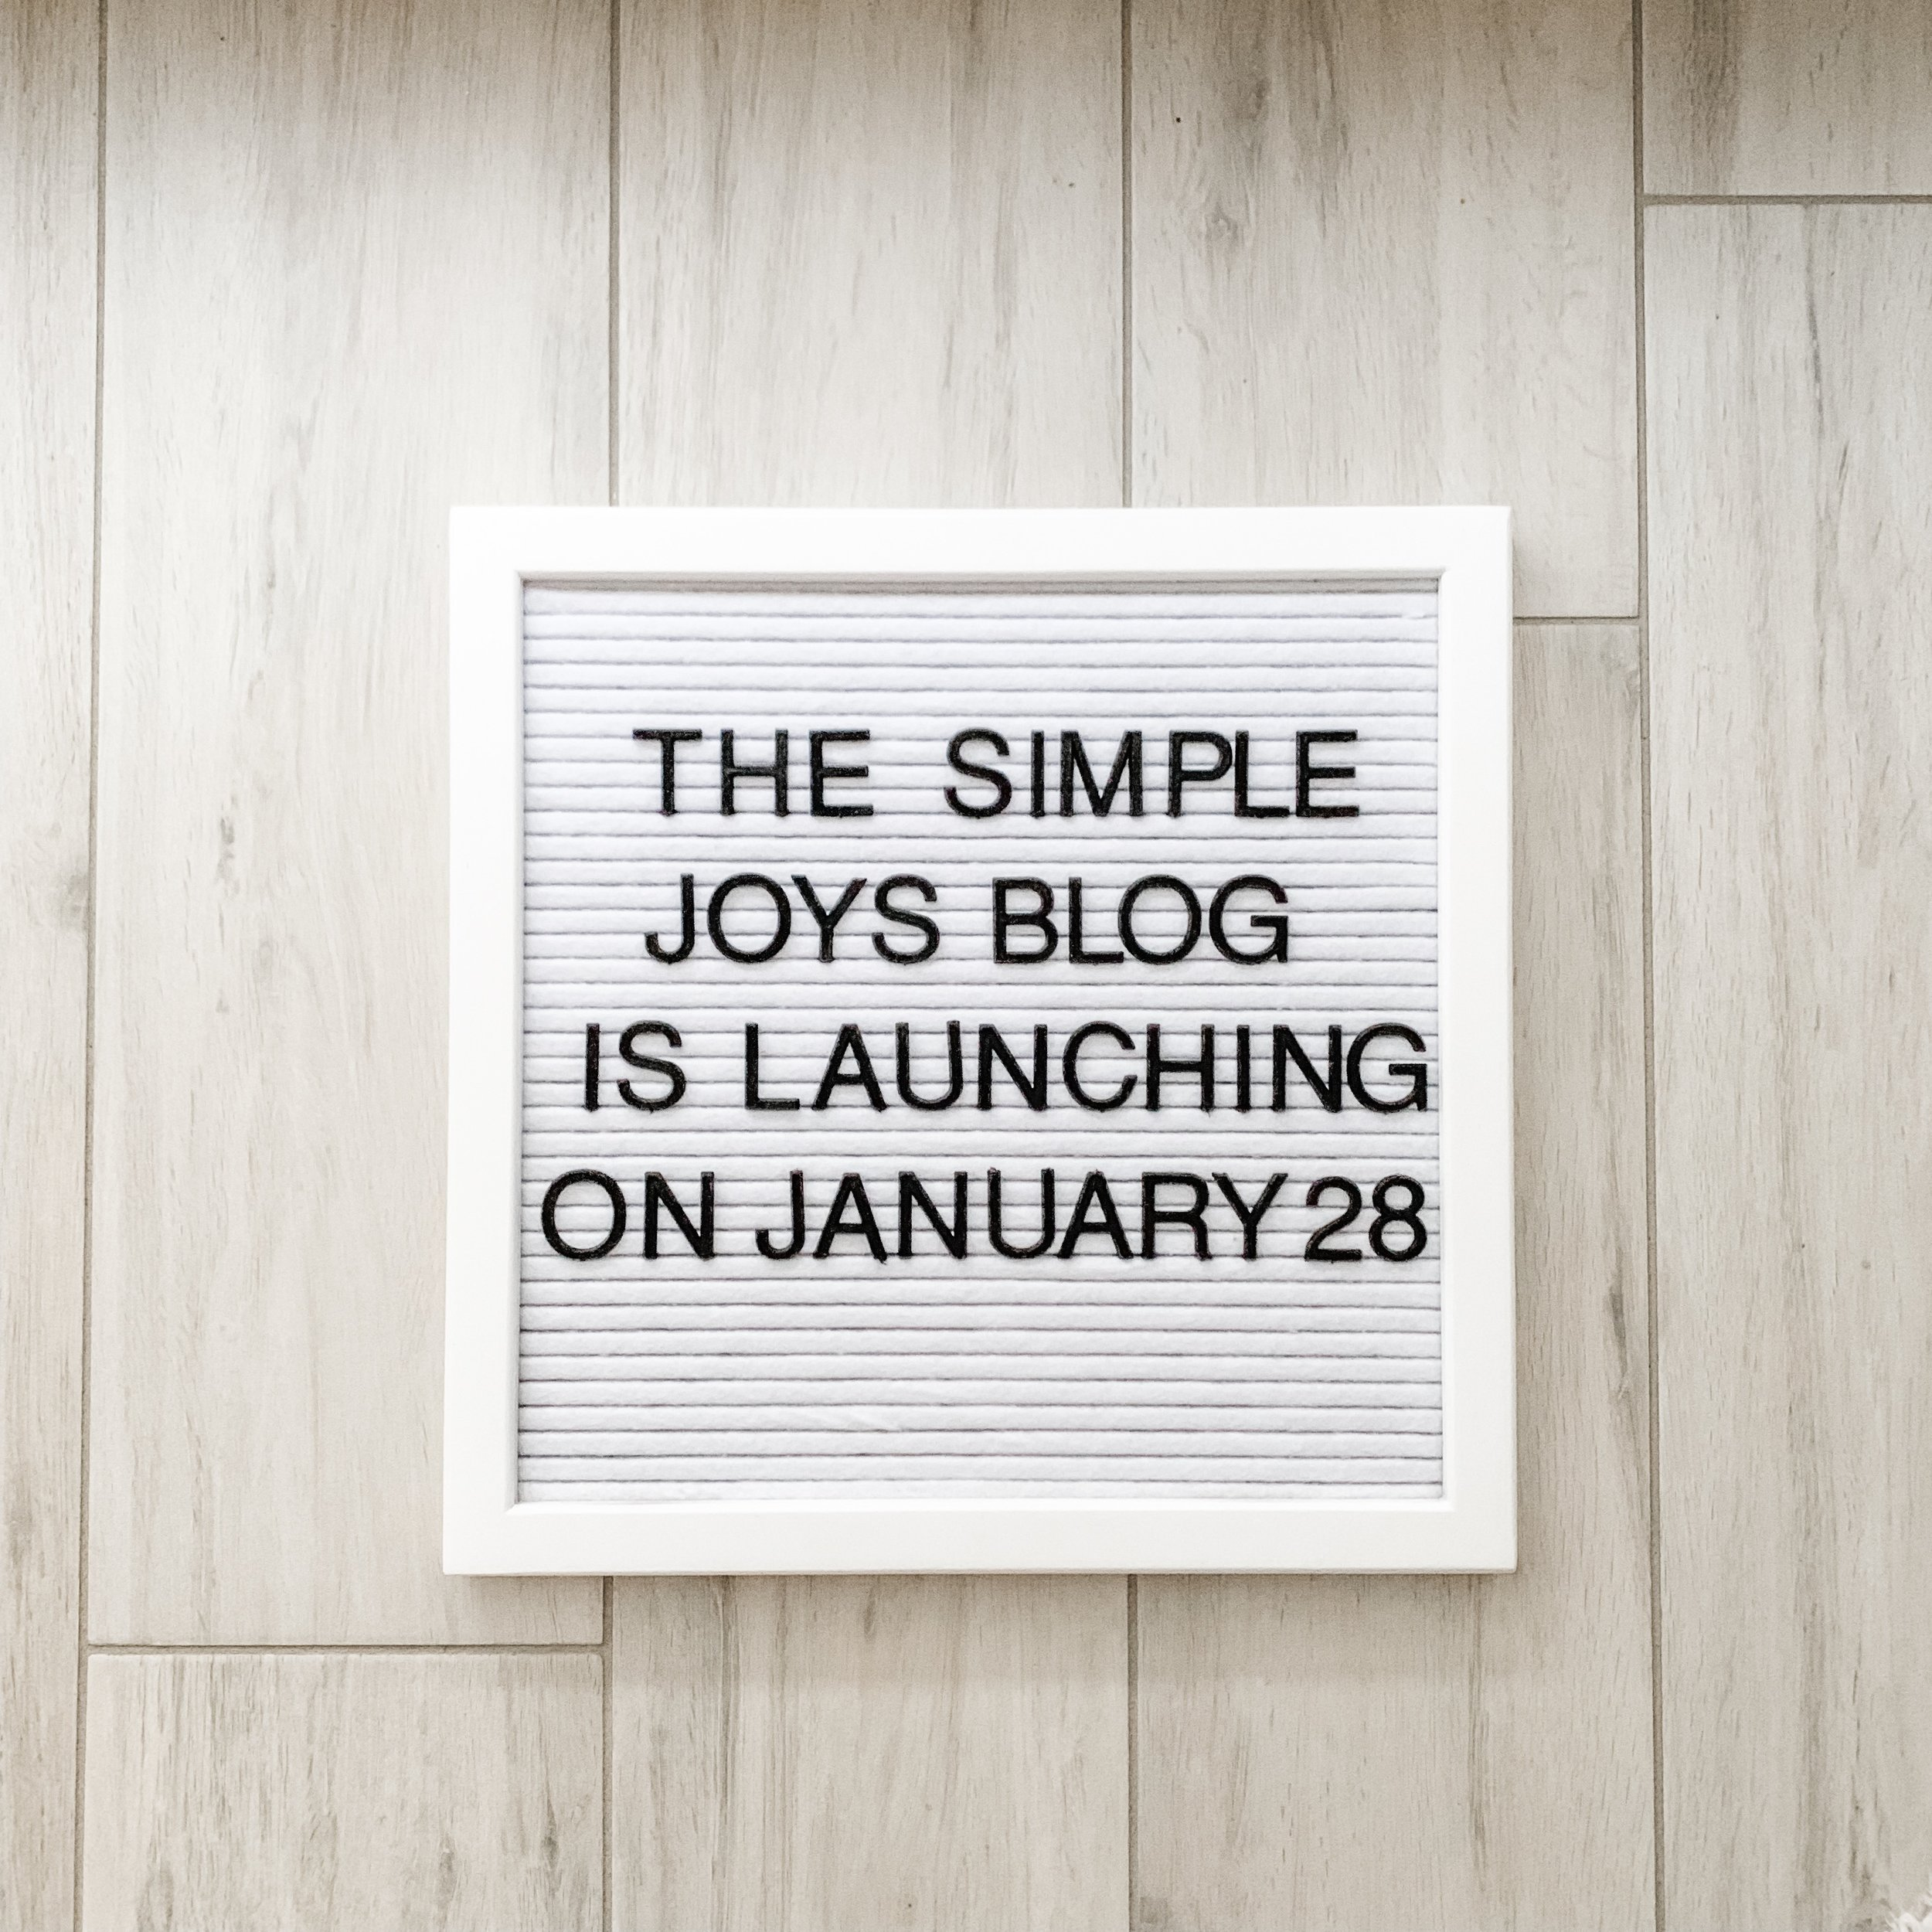 In mid-January, I announced that I was launching the blog!